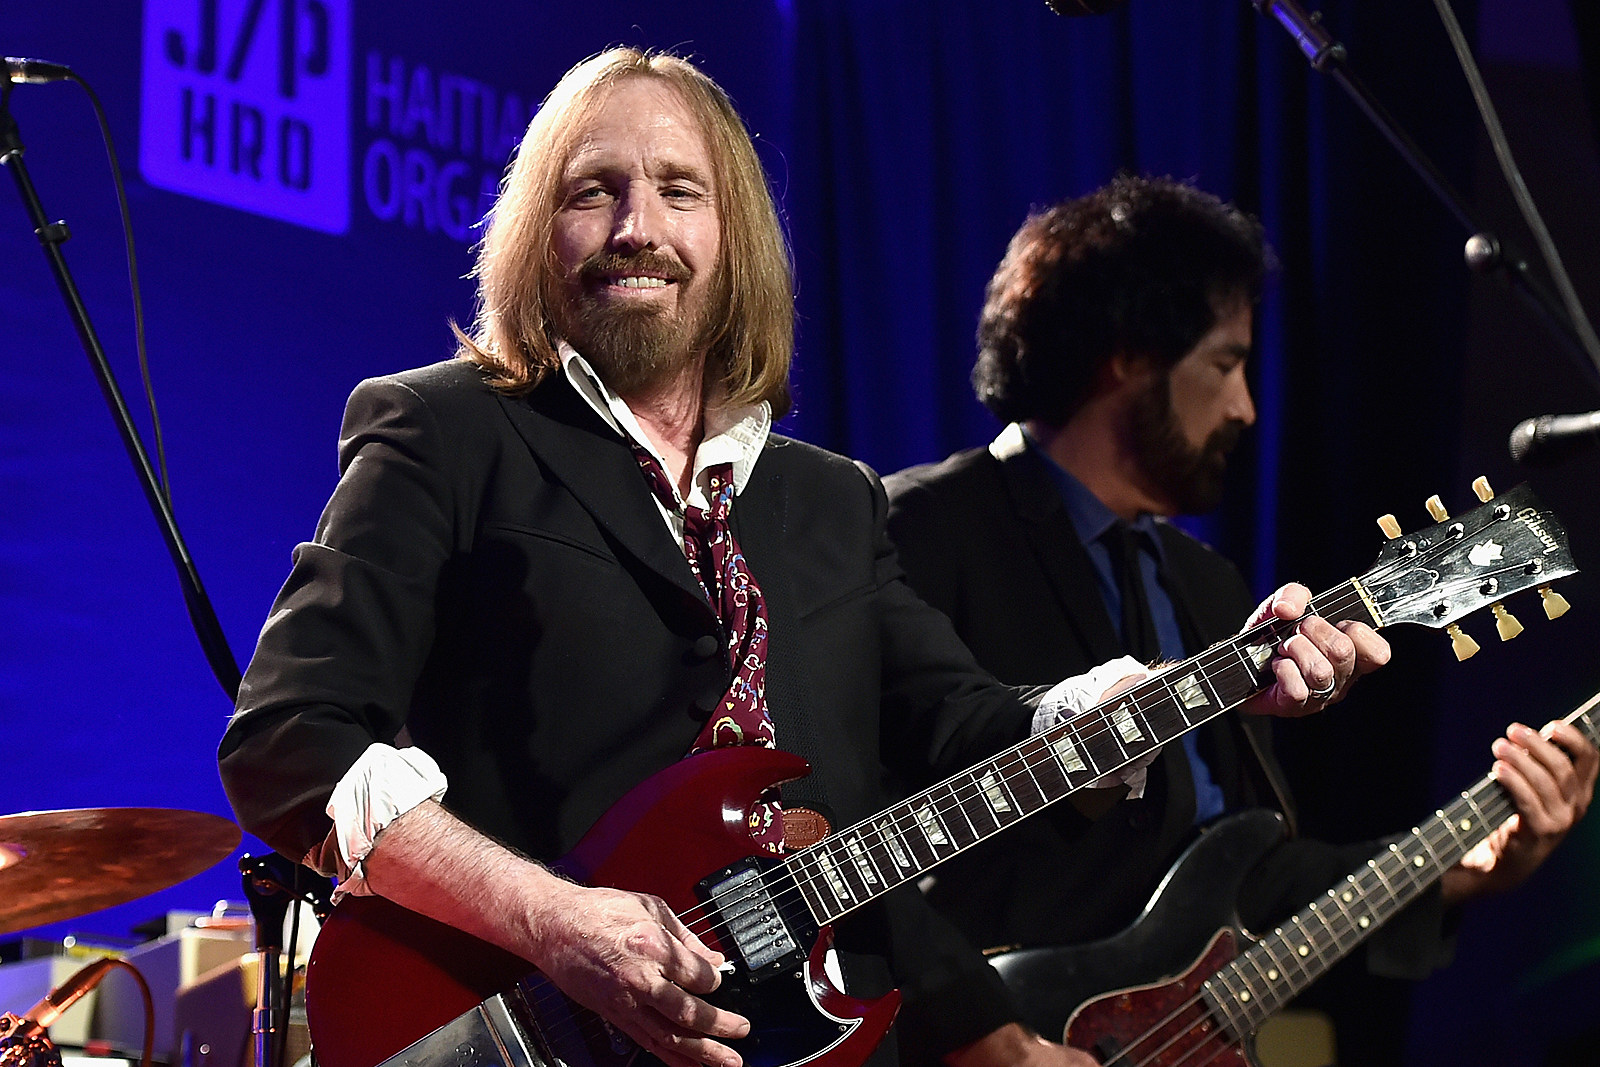 You Could Be in the Next Tom Petty Video